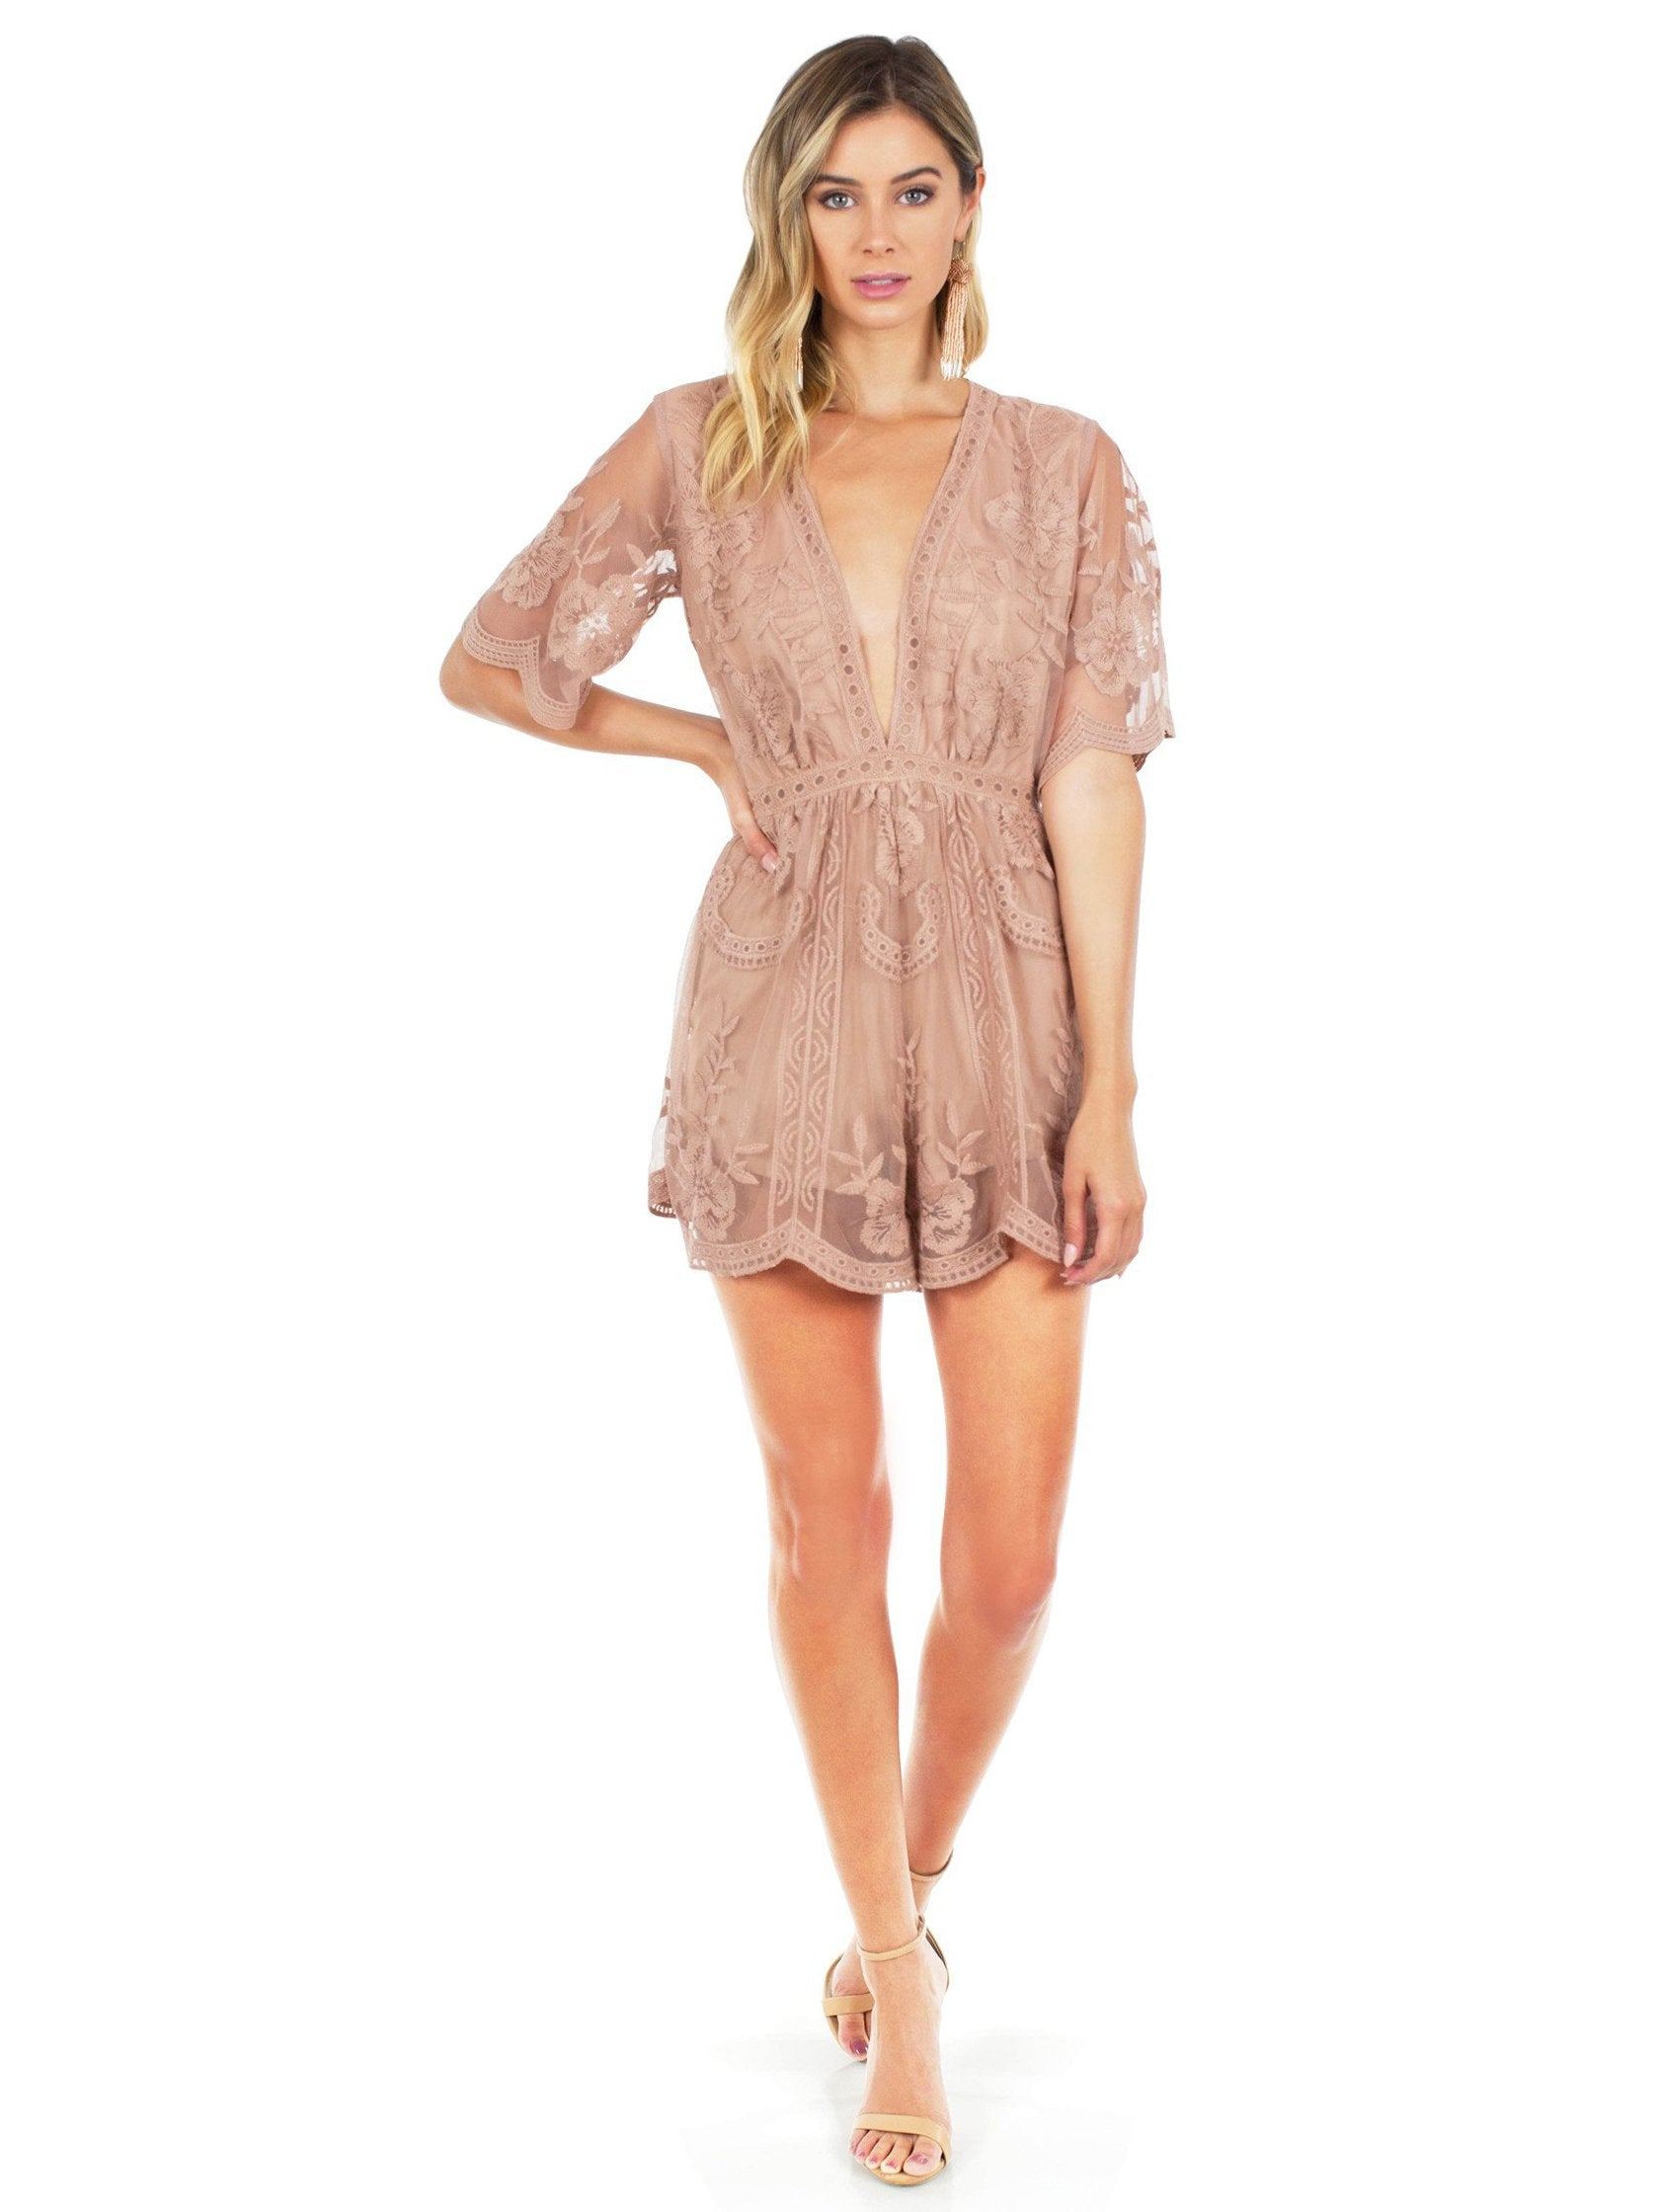 Girl outfit in a romper rental from FashionPass called Breaking Hearts Romper